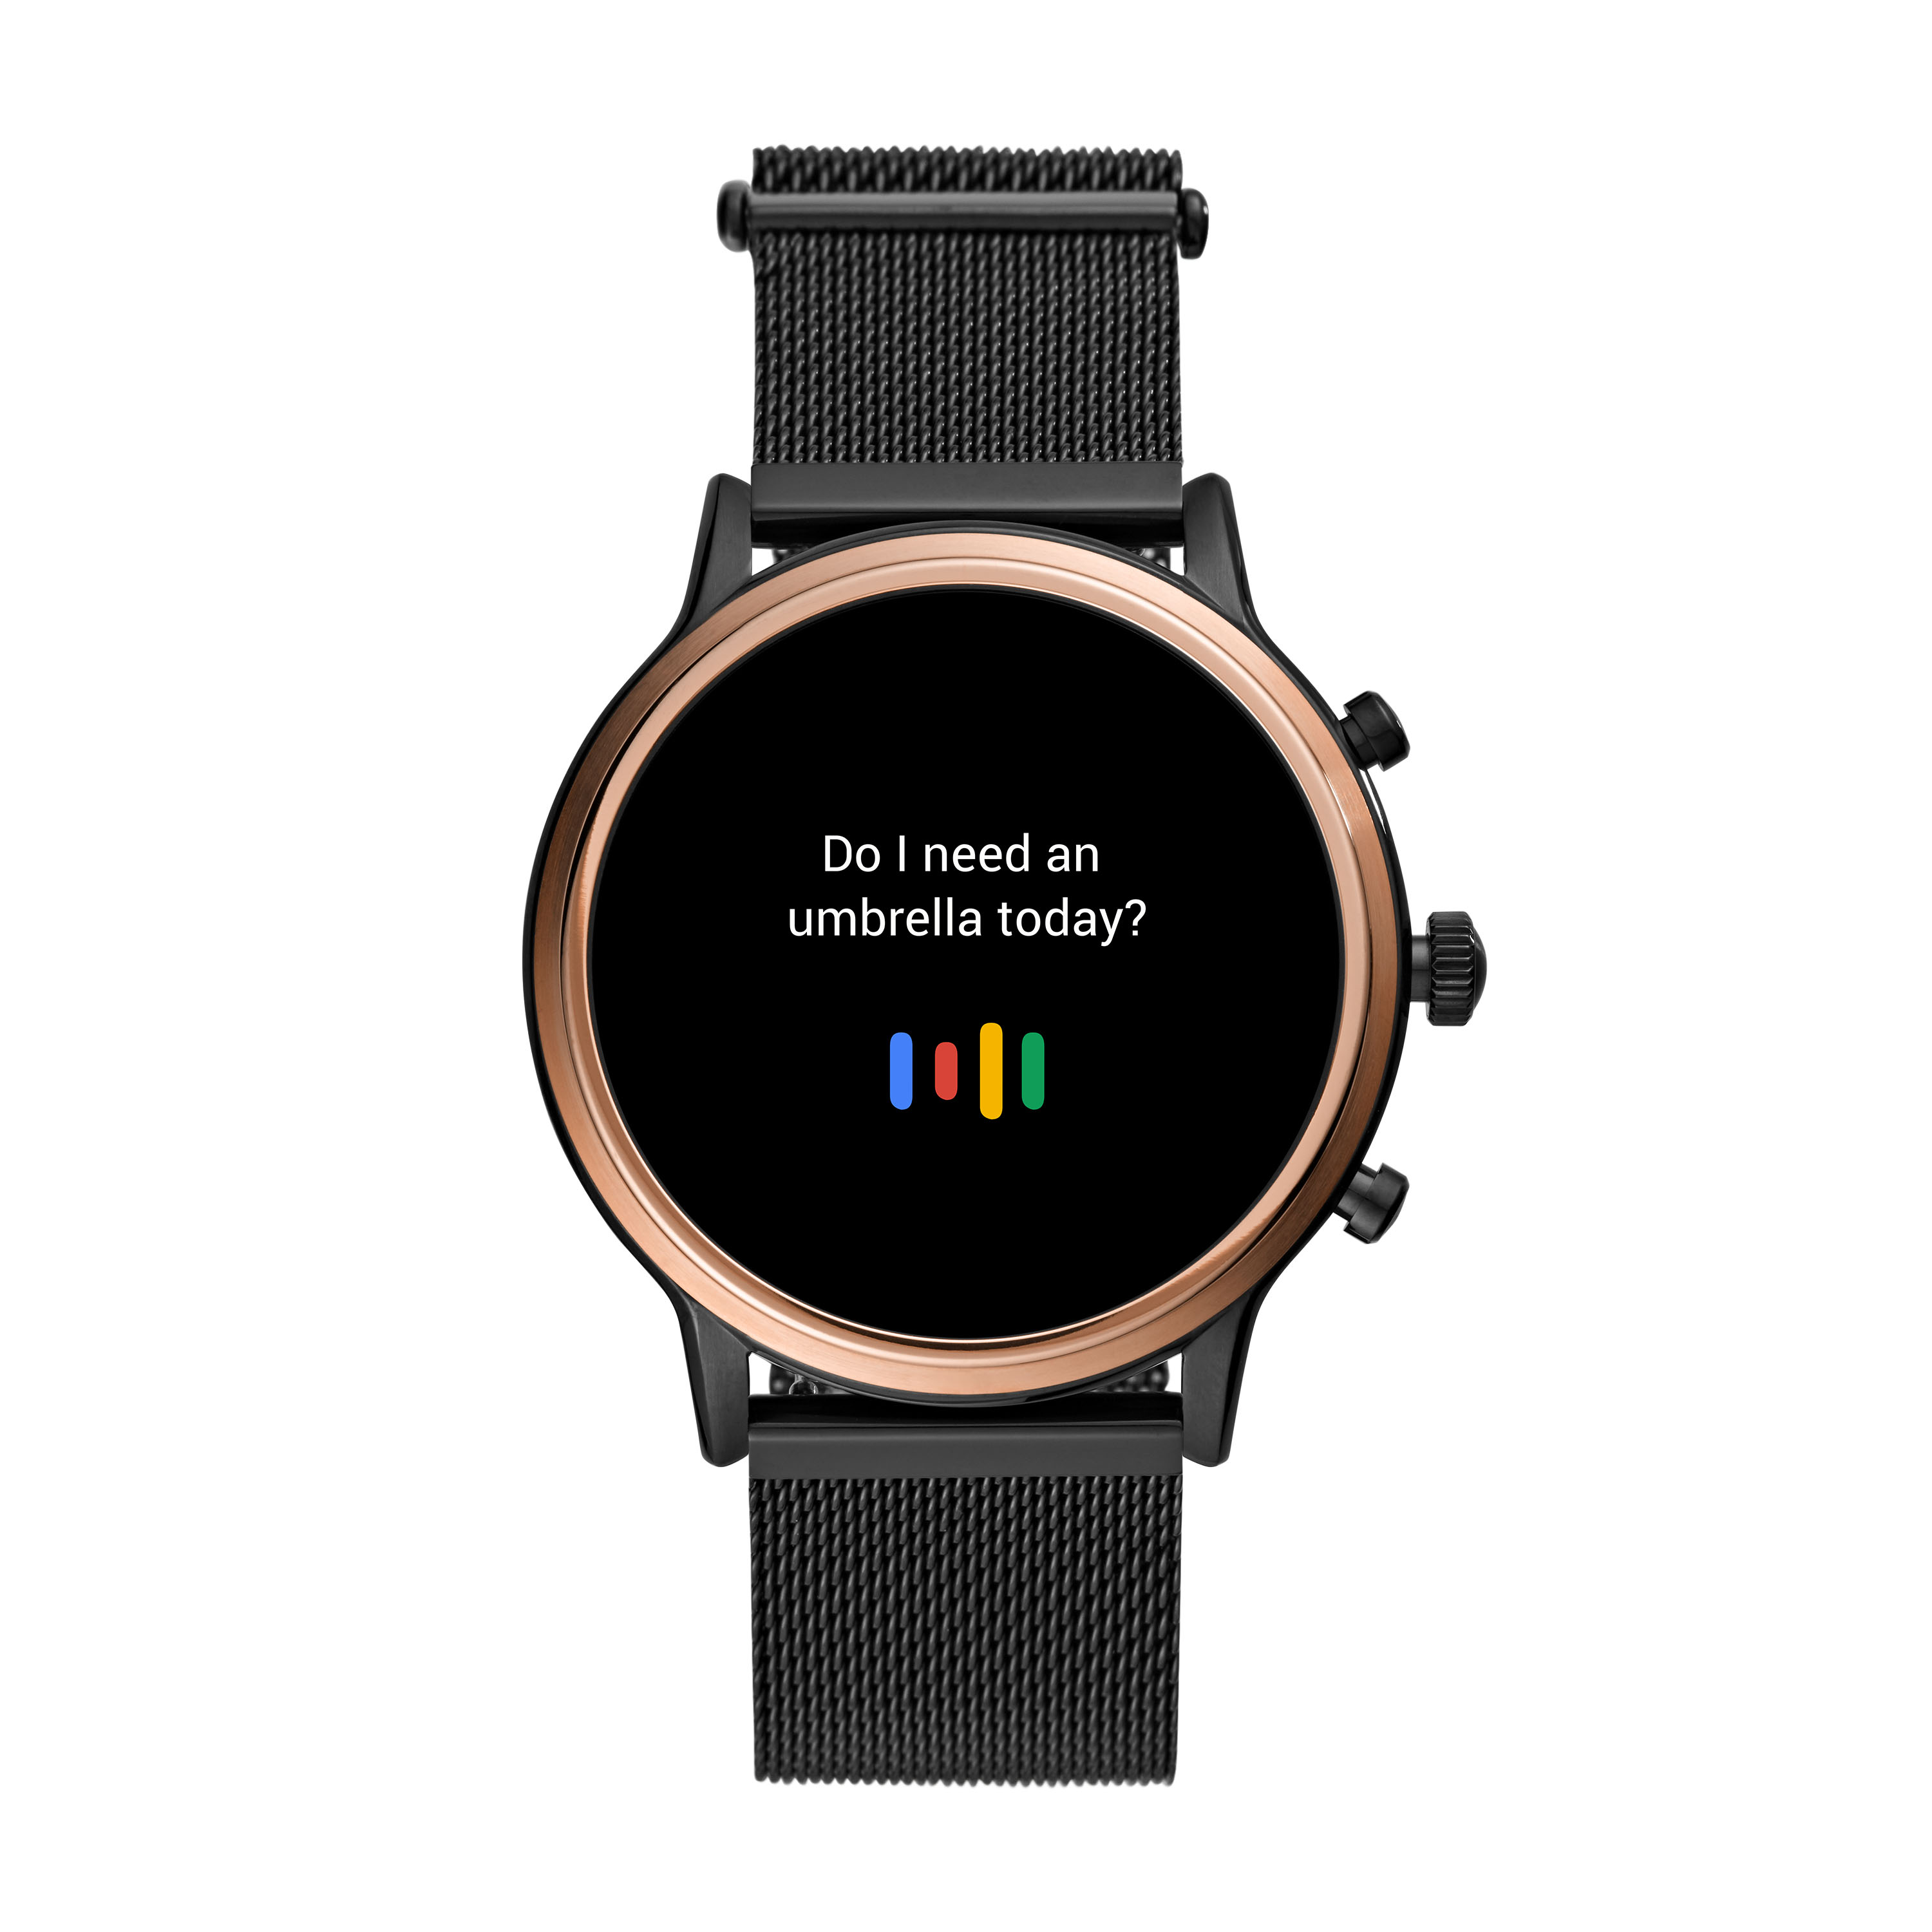 Fossil launches the next generation of smartwatches